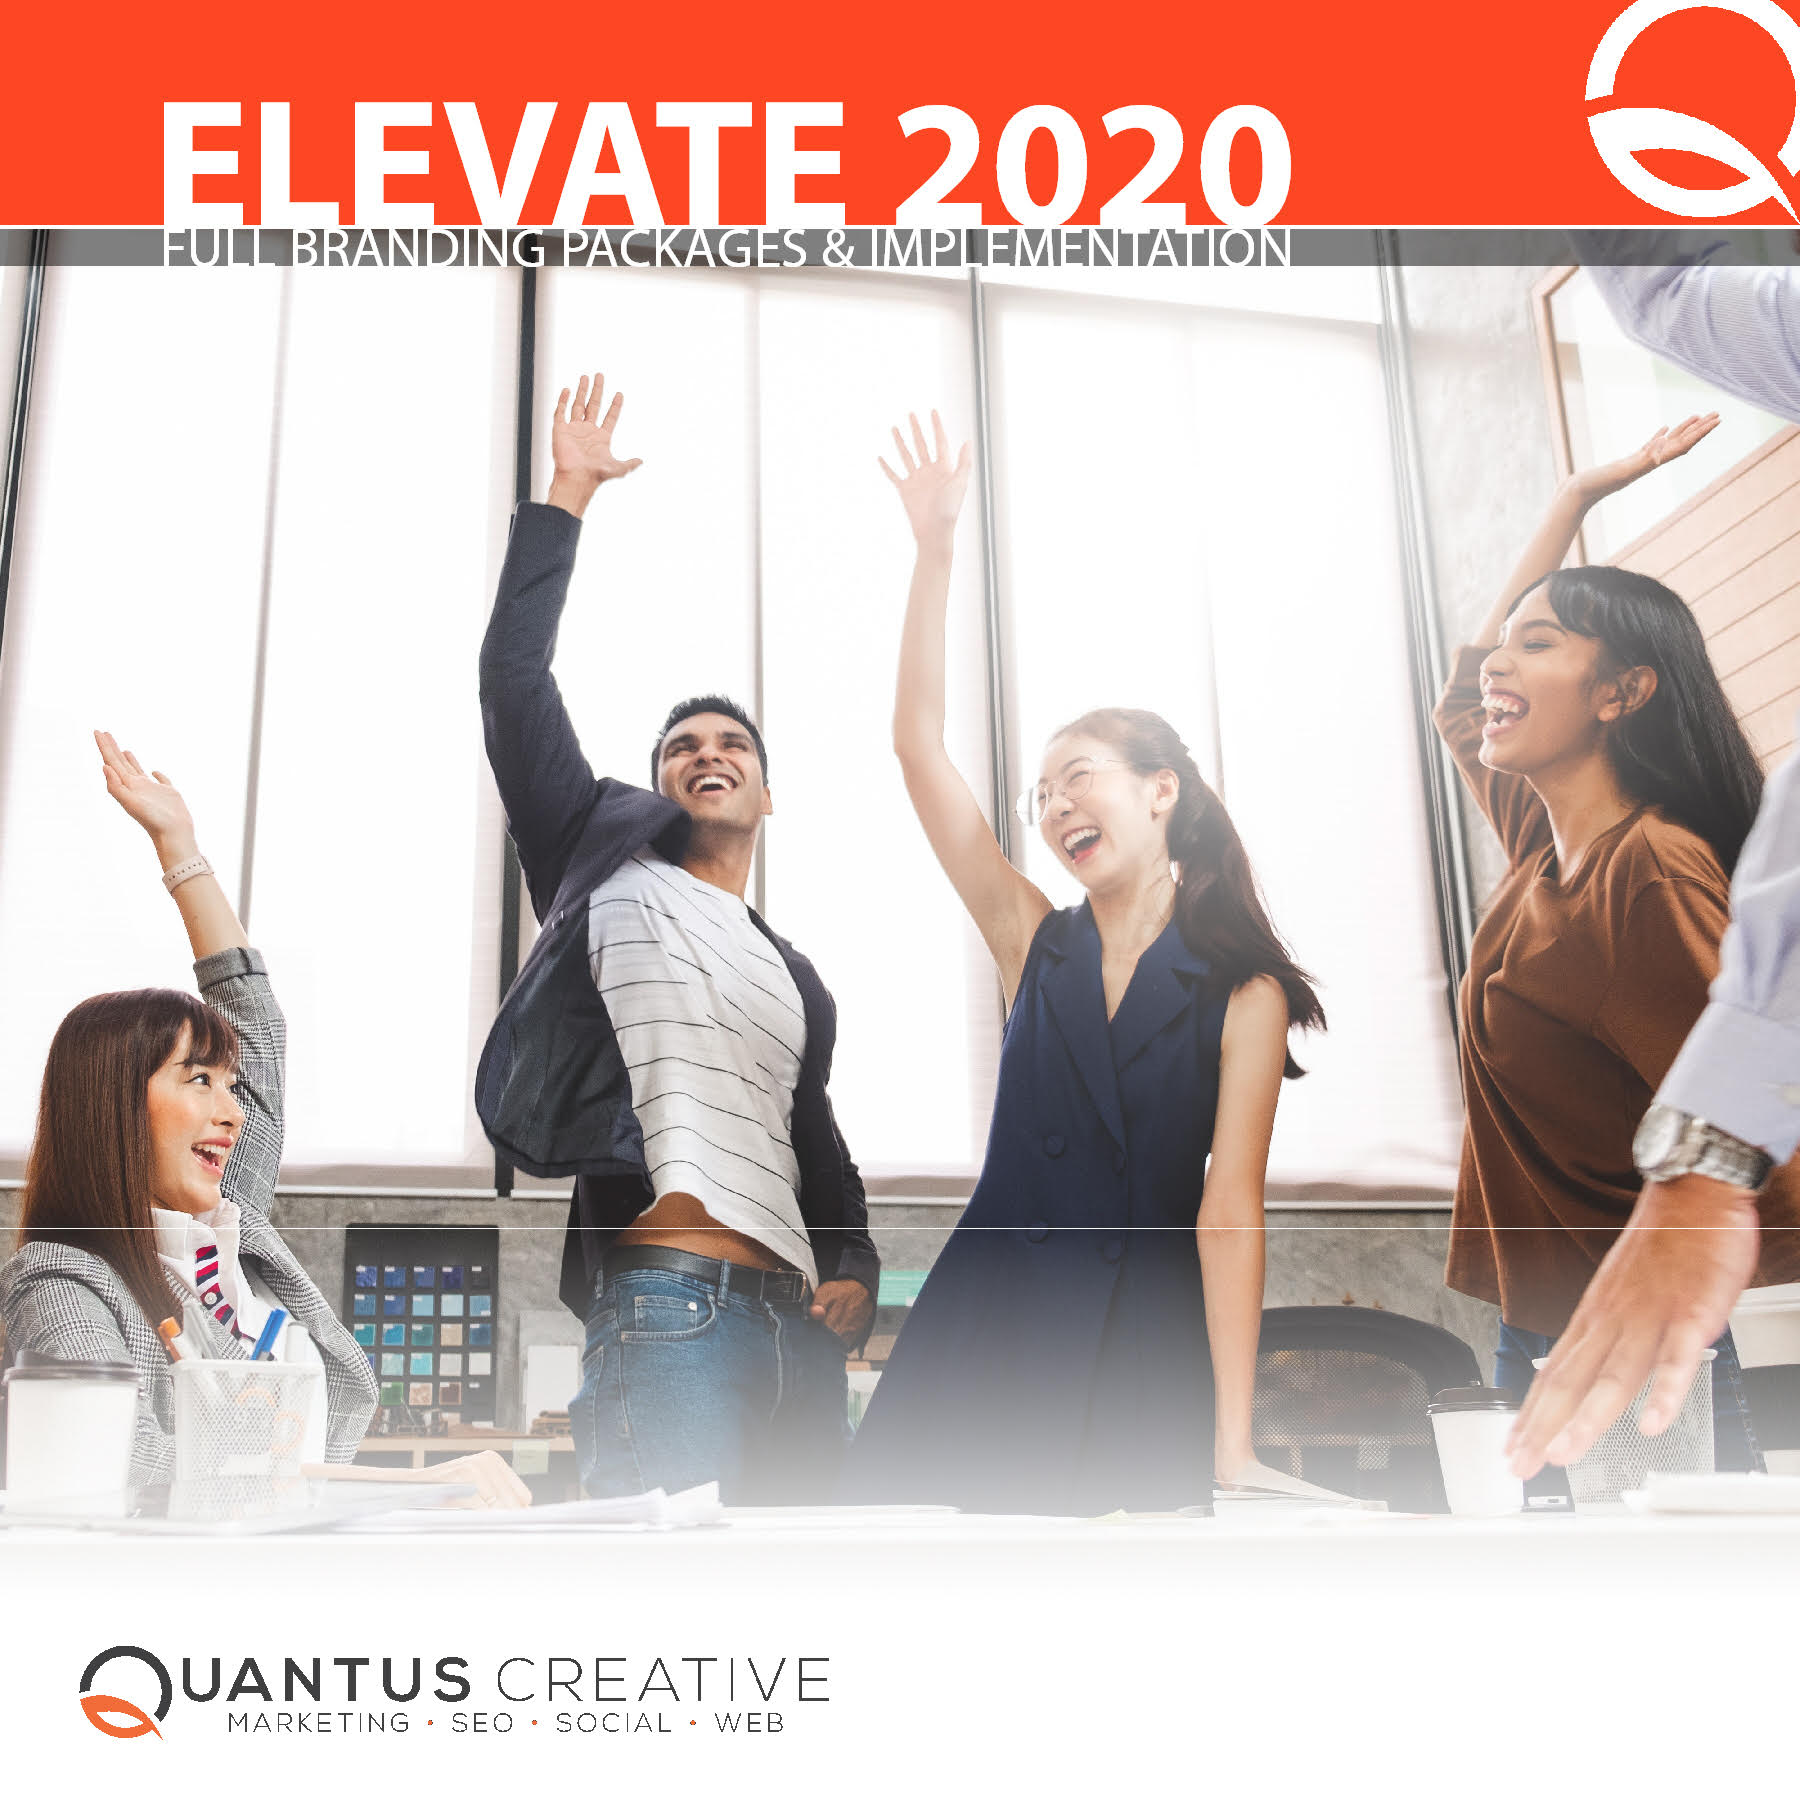 Elevate Your Branding In Time For The New Year